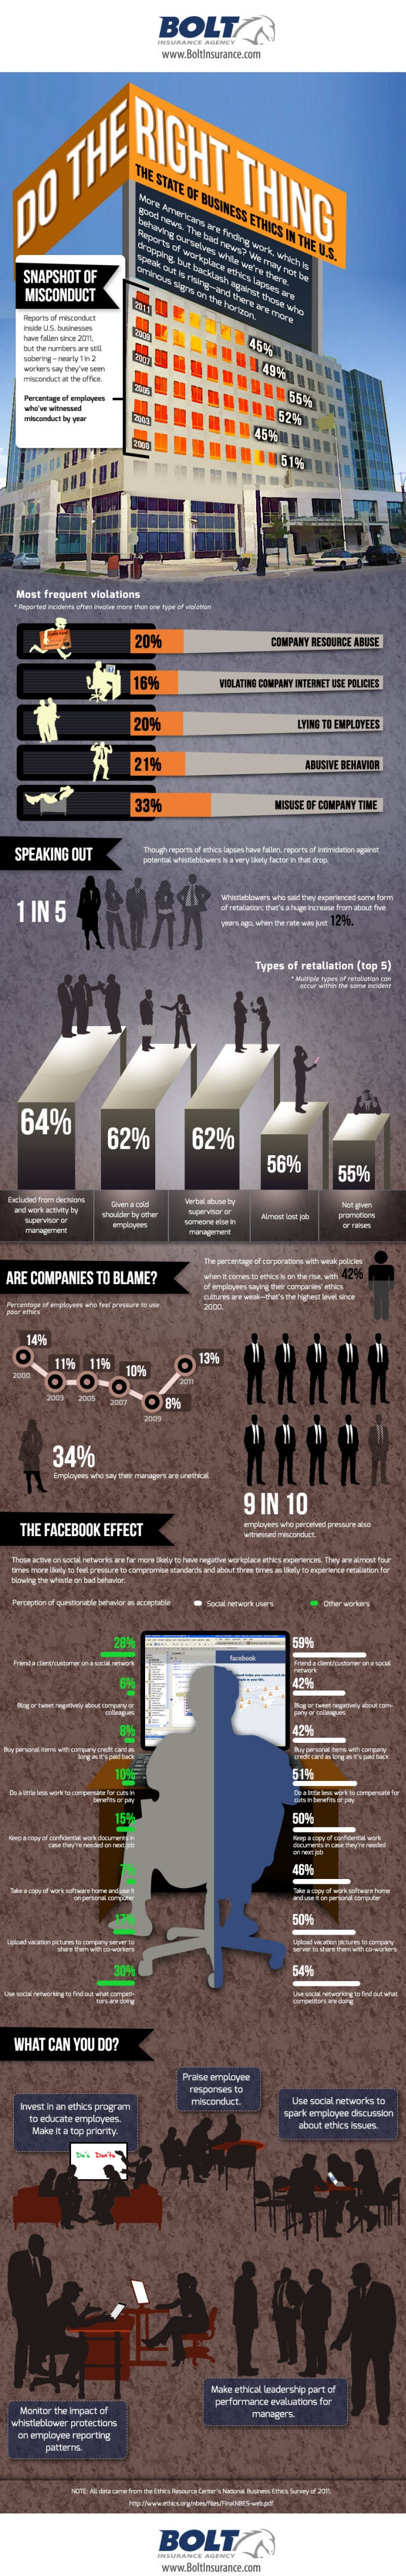 Business Ethics infographic.